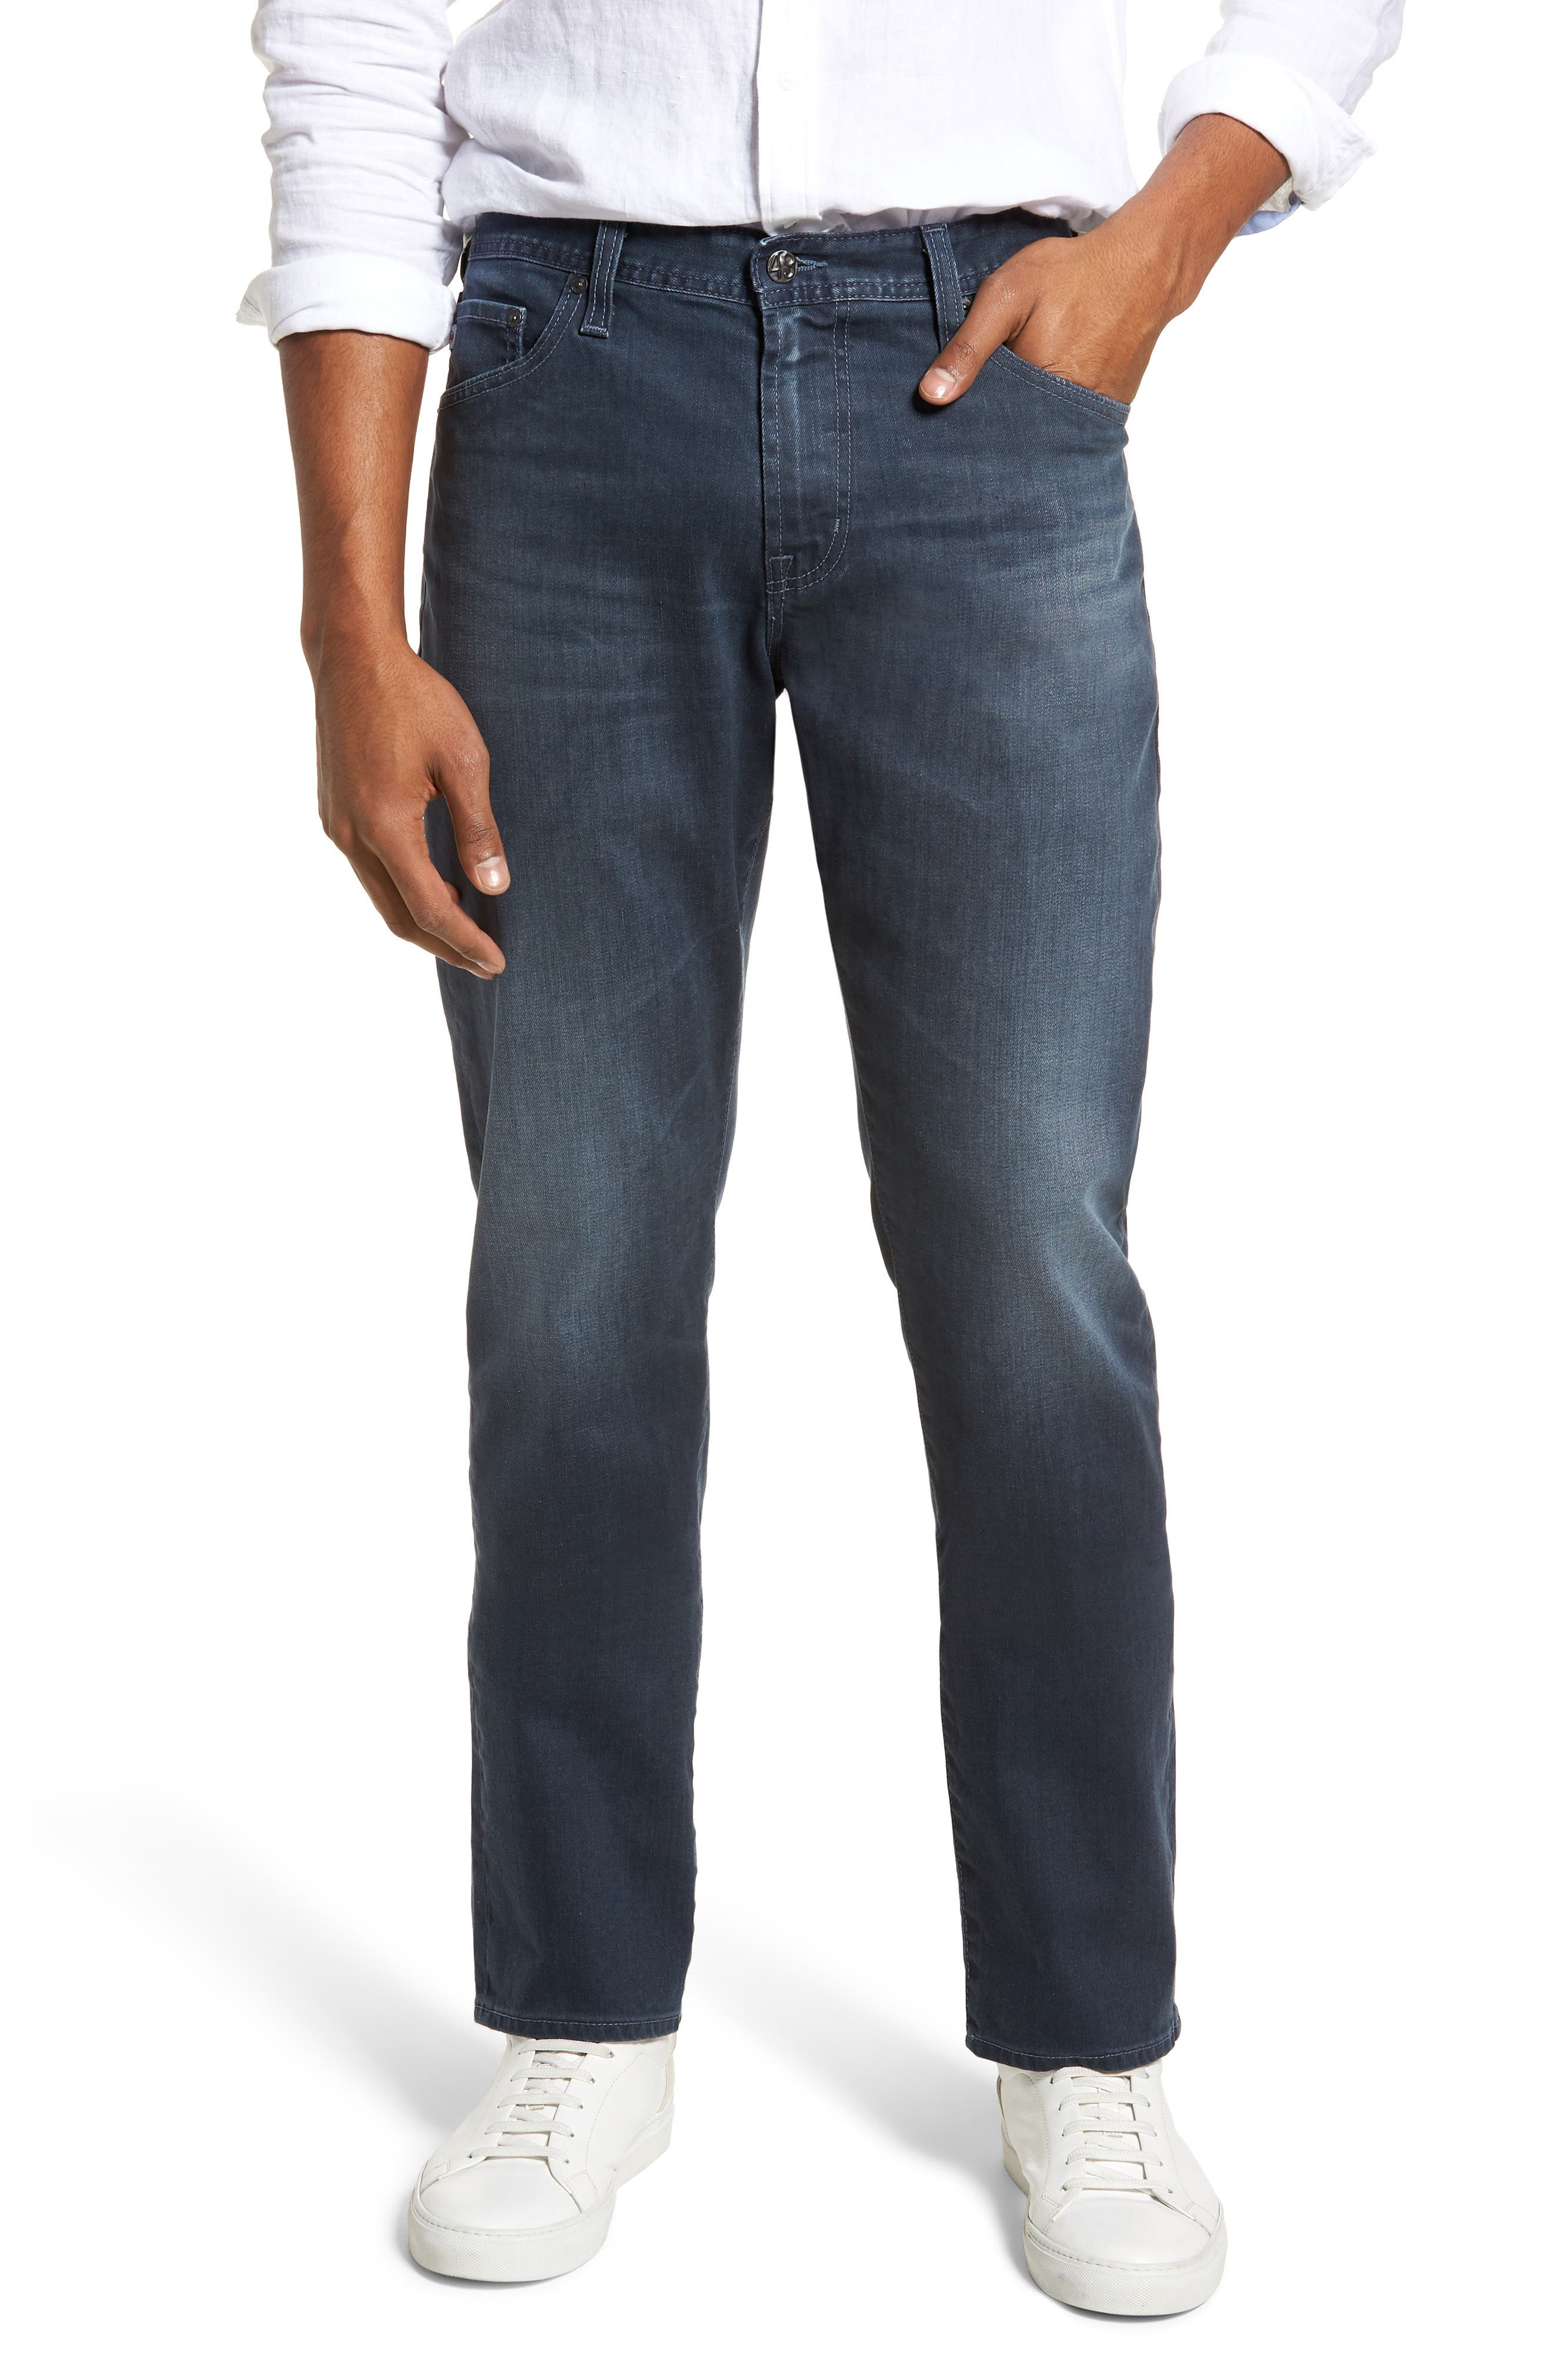 Everett Slim Straight Leg Jeans,                             Main thumbnail 1, color,                             9 YEARS TIDEPOOL